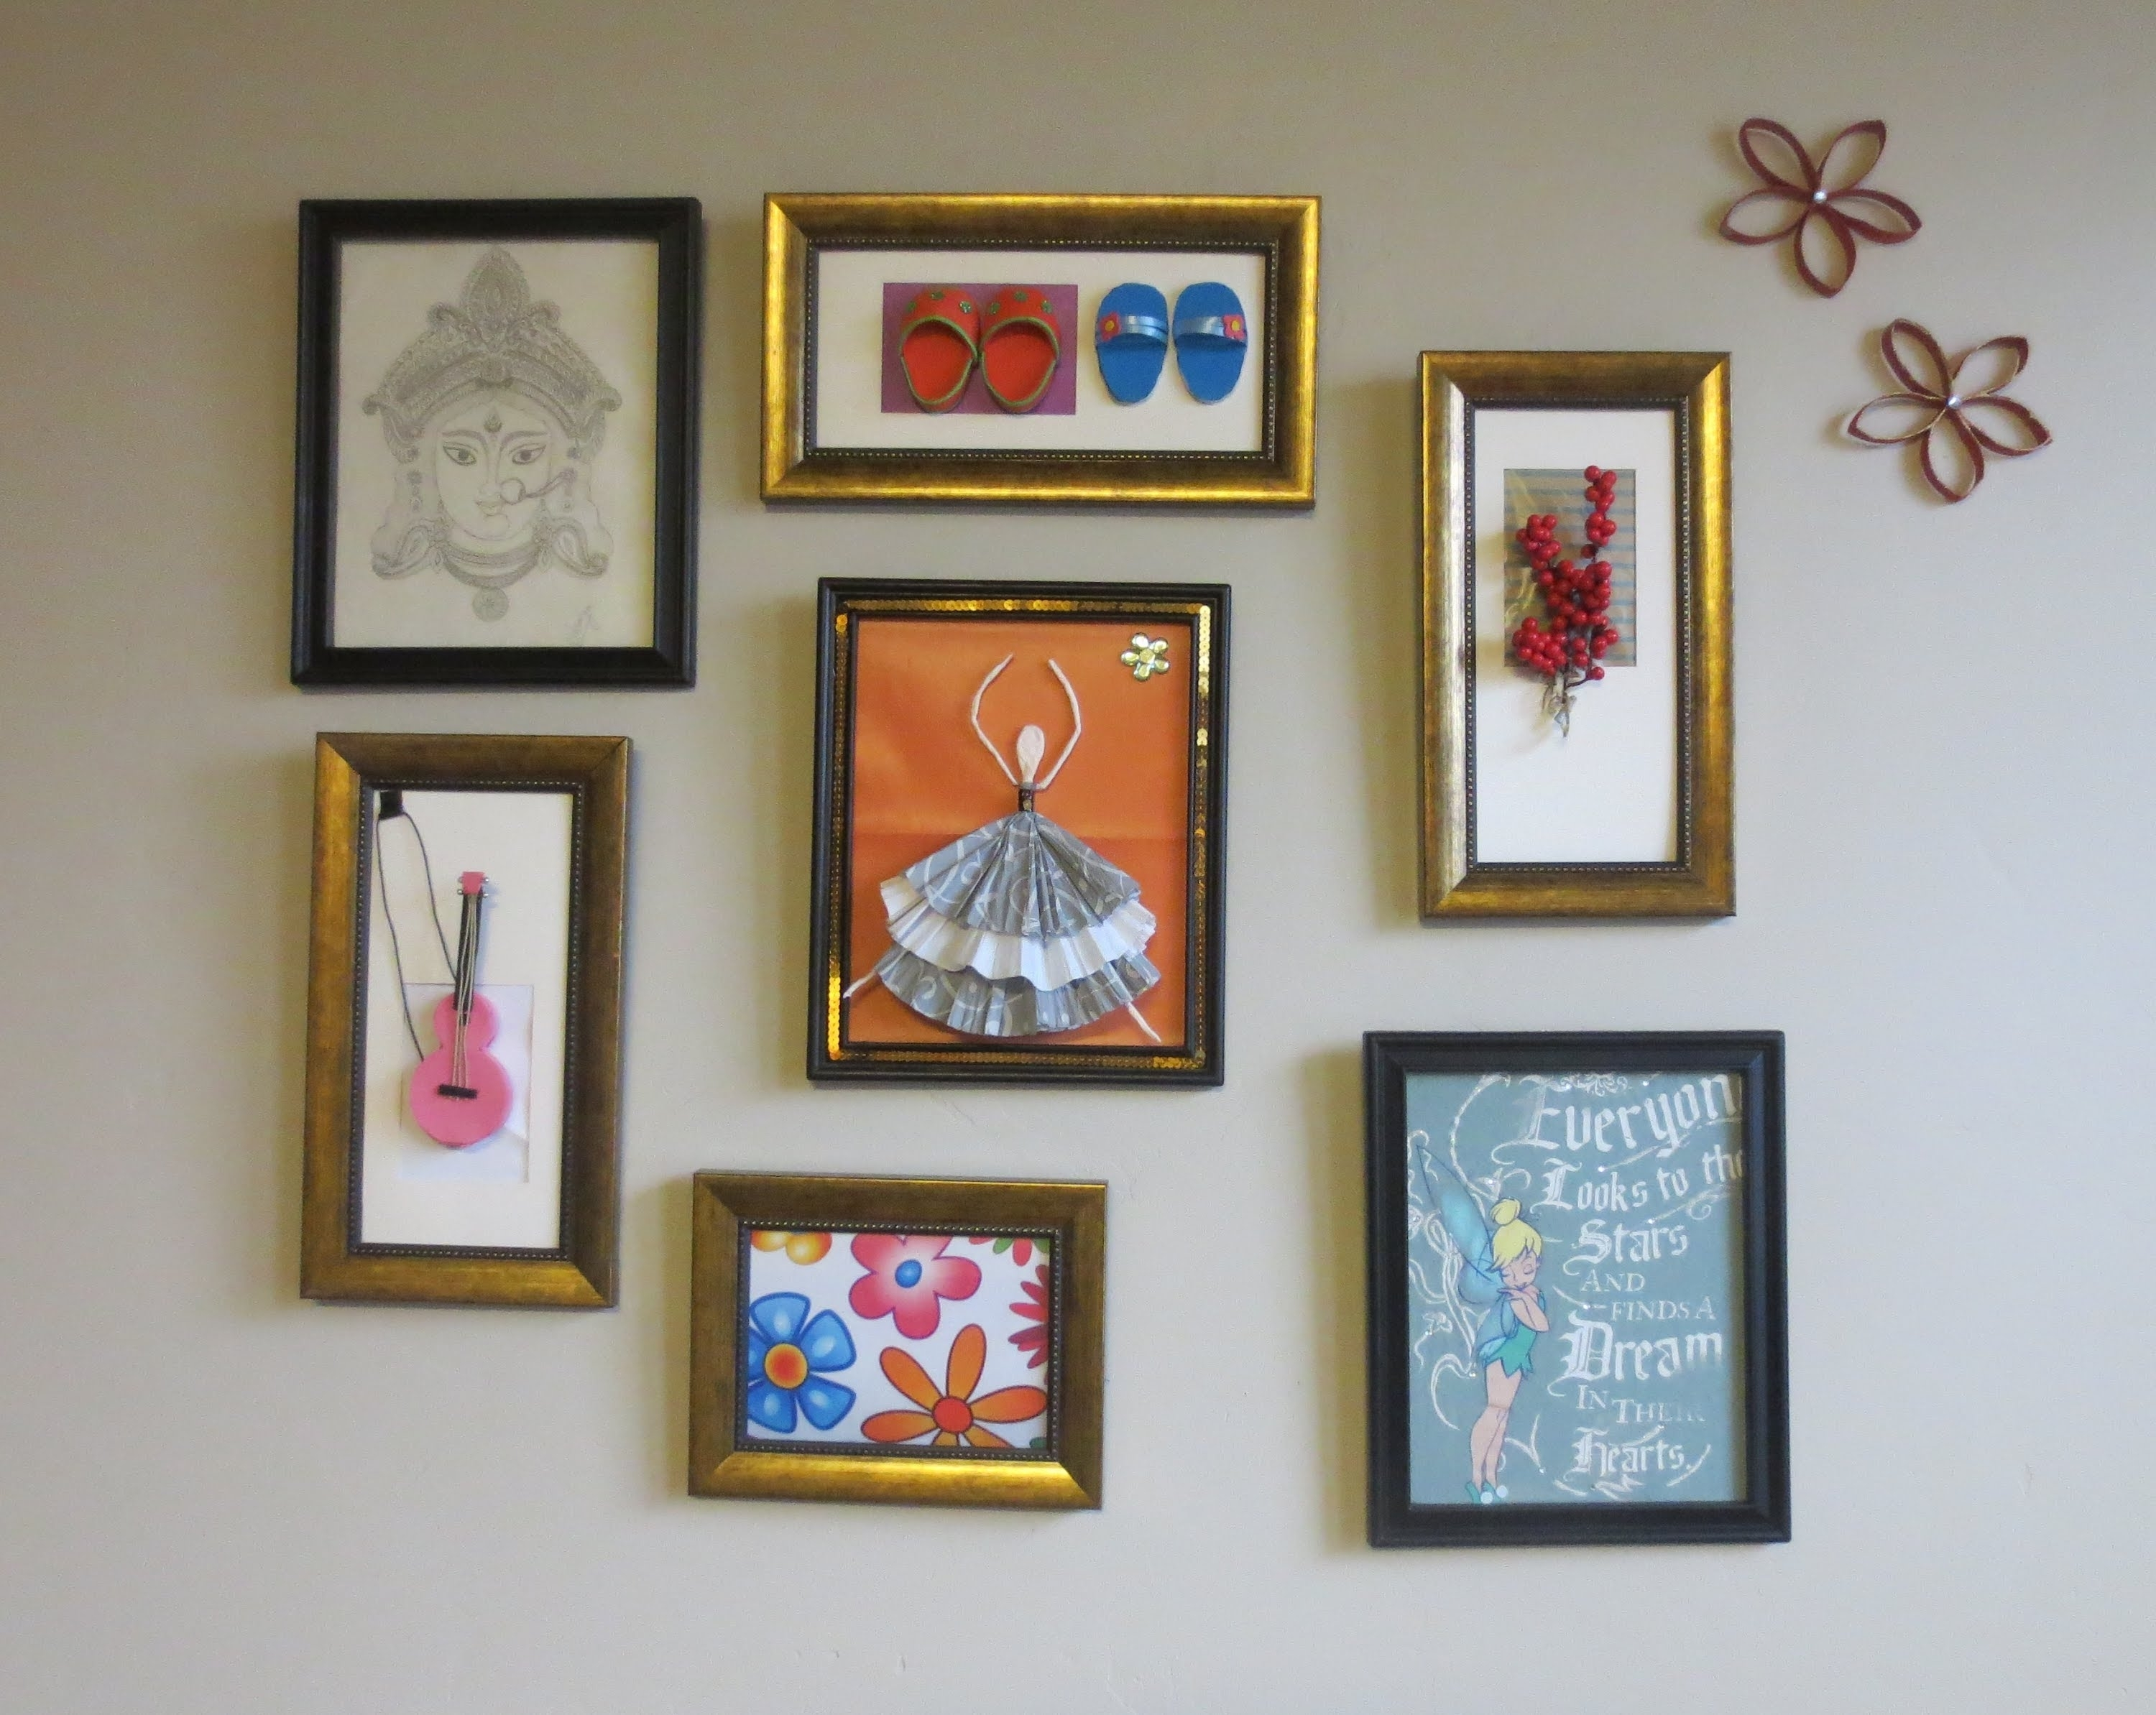 Home Decor : Tshirt Graphic & 3D Wall Art Picture Frame Collage Intended For Recent Cheap Framed Wall Art (Gallery 5 of 20)